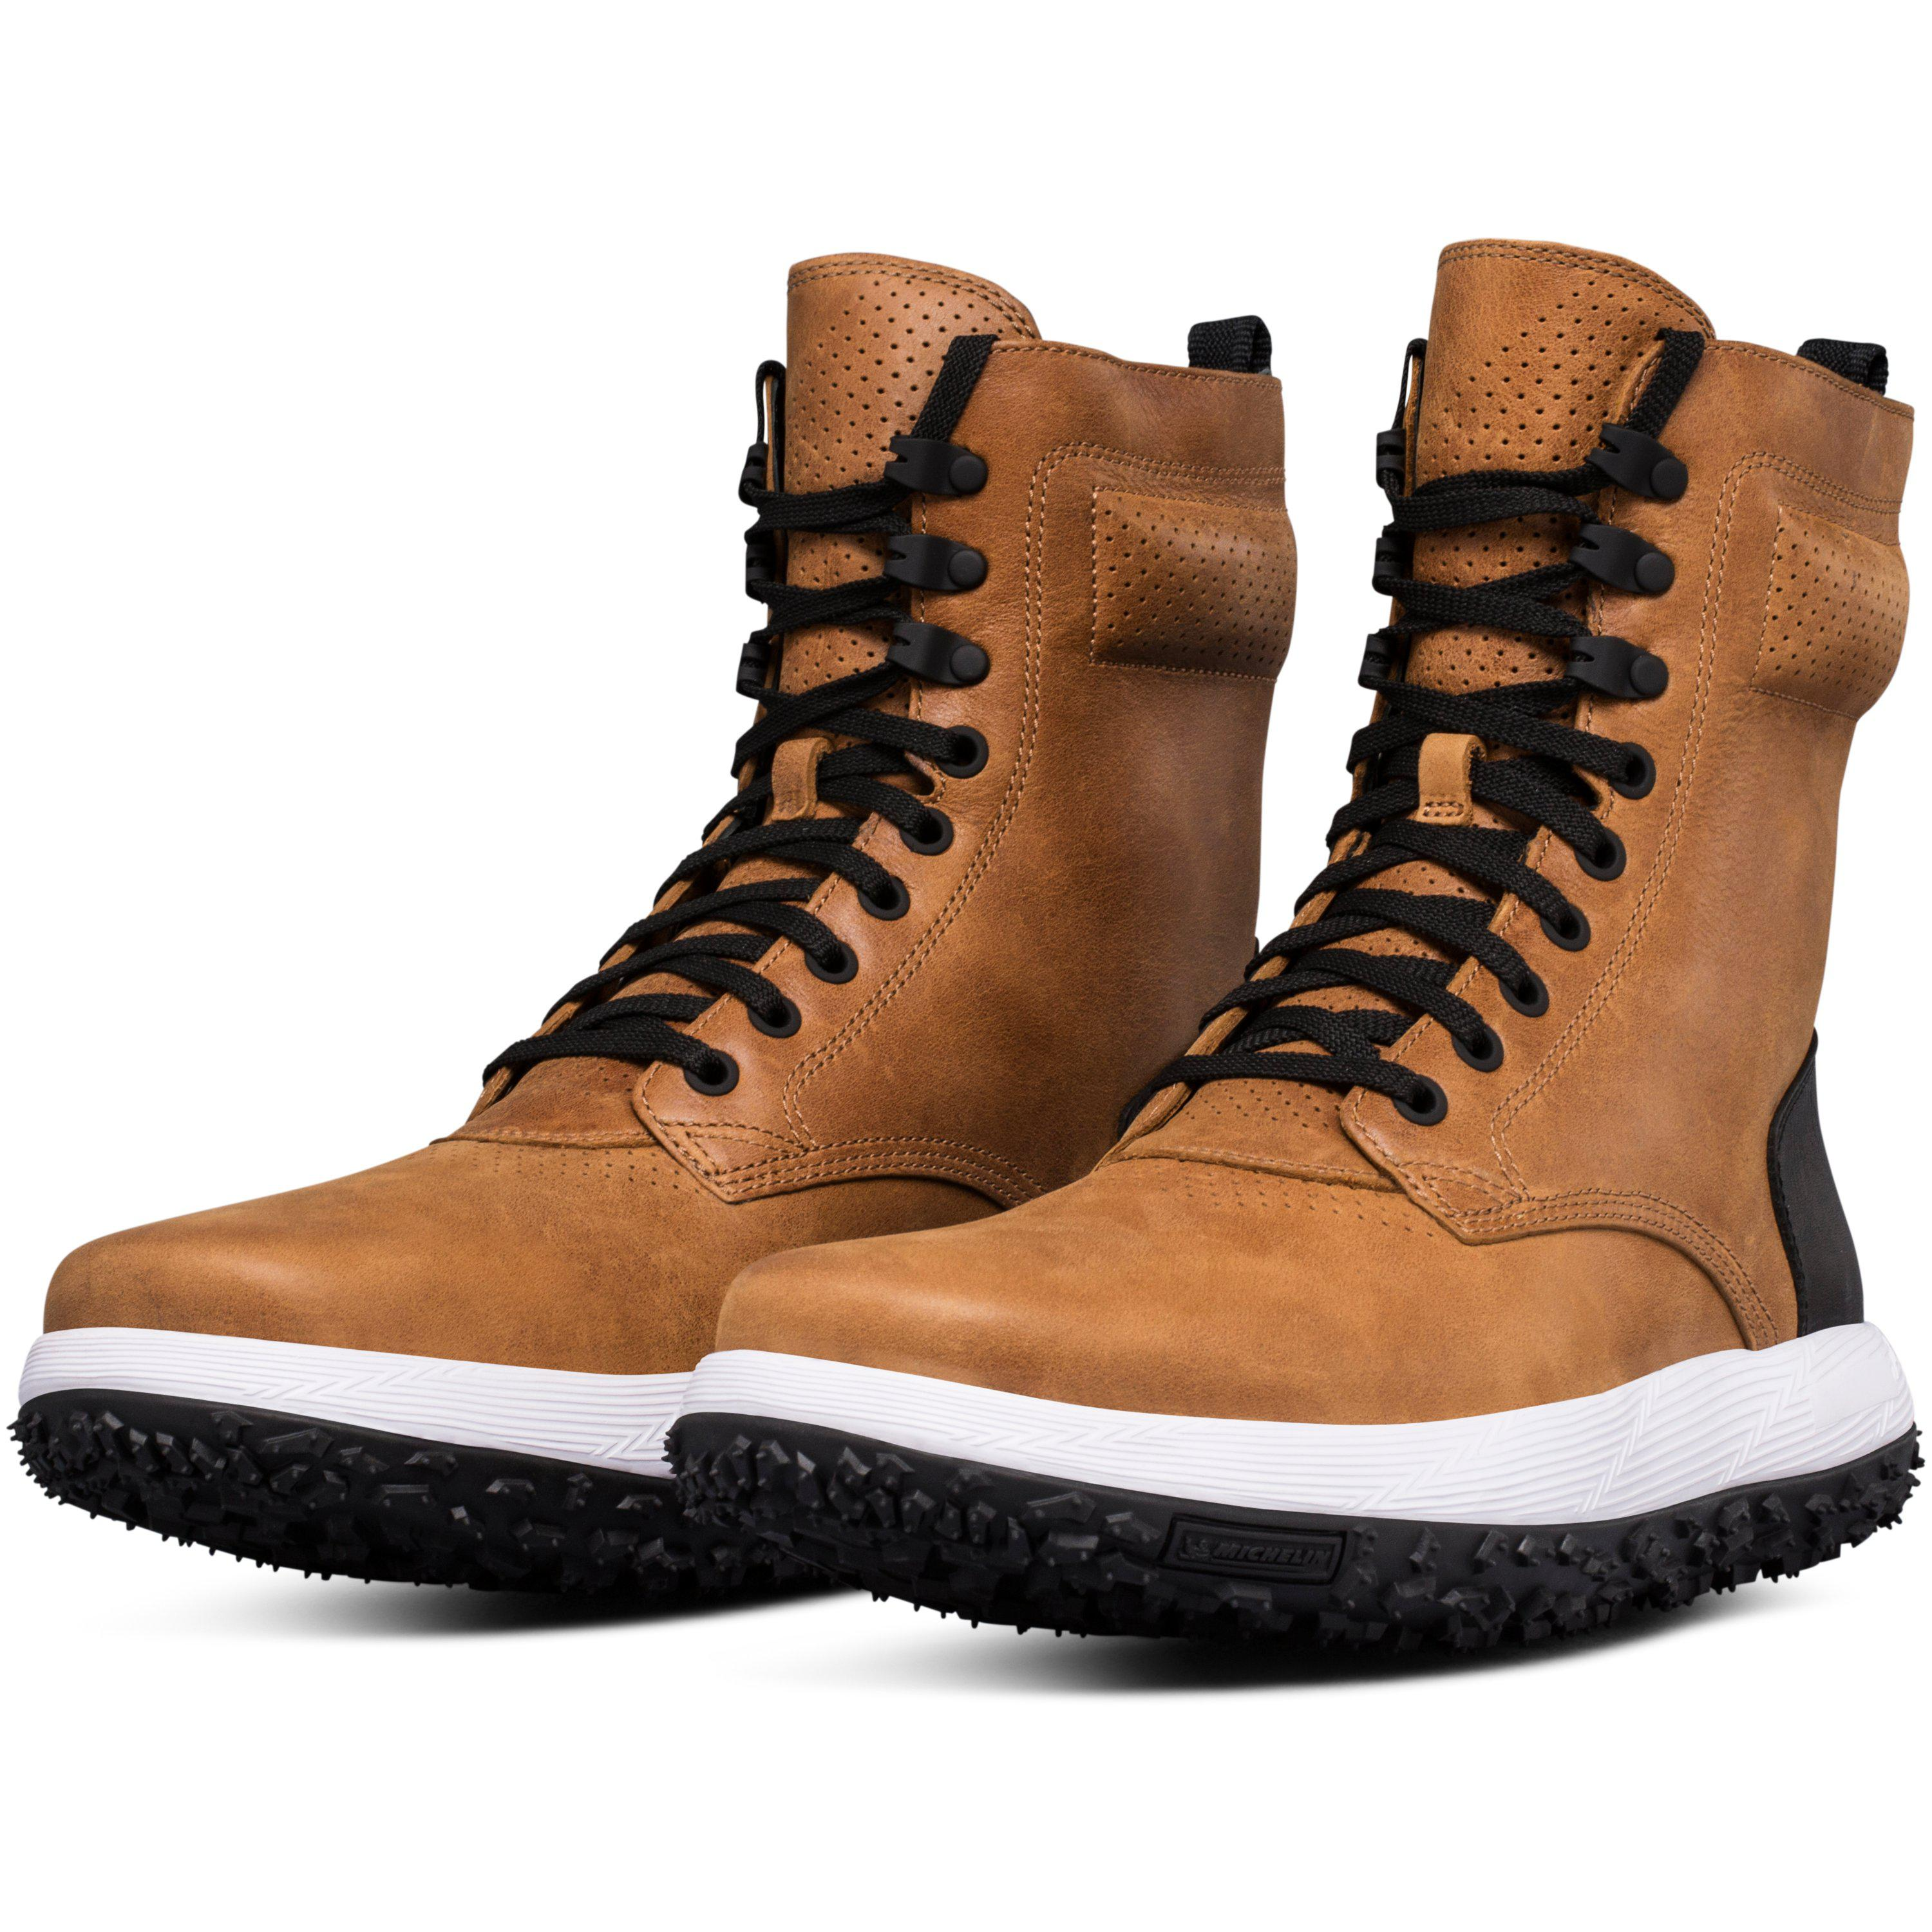 check out f4e11 a16fc Under Armour Brown Men's Uas Rlt Fat Tire Sherpa Boots for men